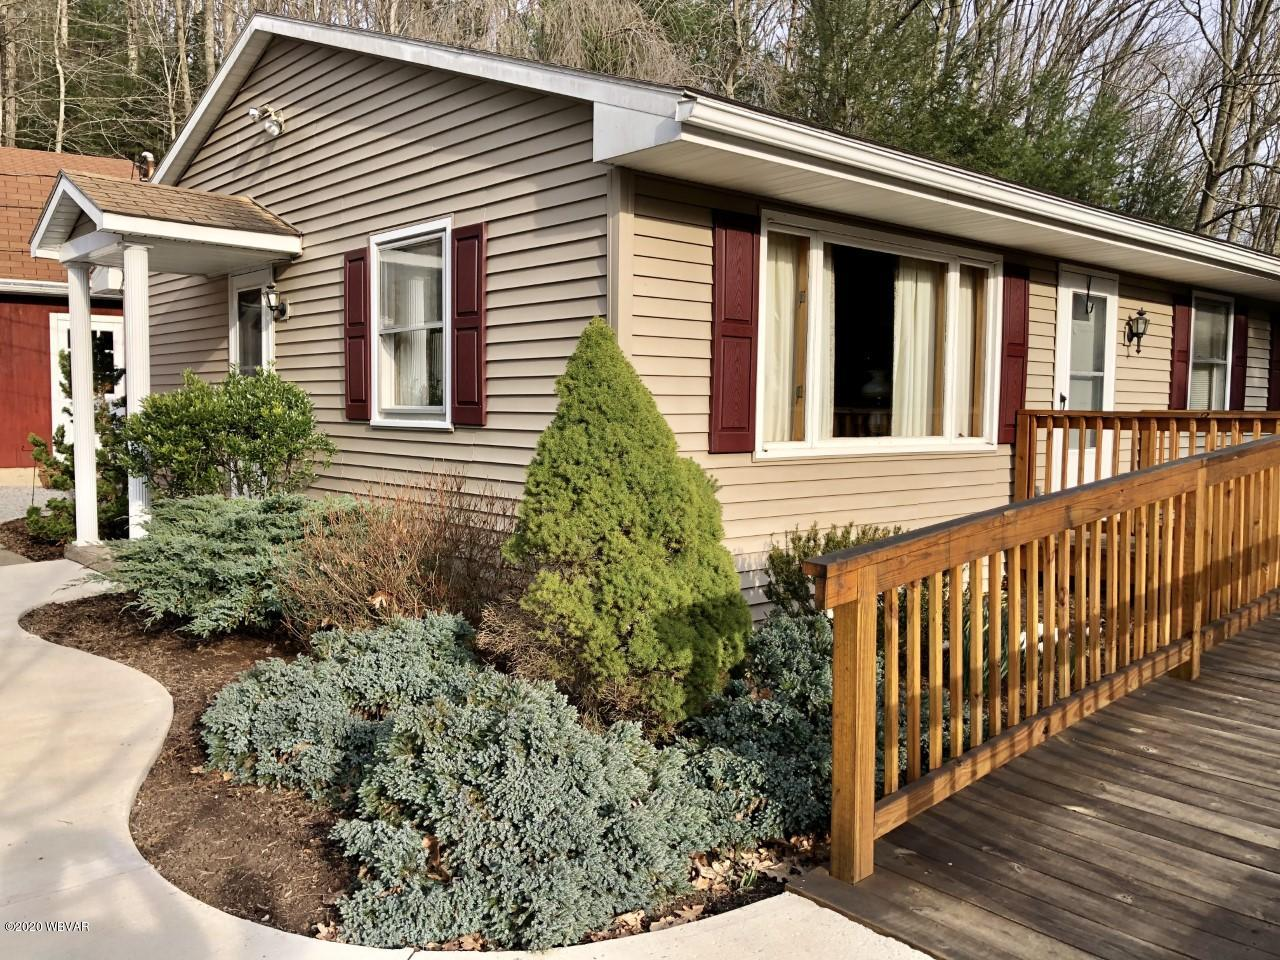 770 NORTHWAY RD EXTENSION,Williamsport,PA 17701,3 Bedrooms Bedrooms,1 BathroomBathrooms,Residential,NORTHWAY RD,WB-90037